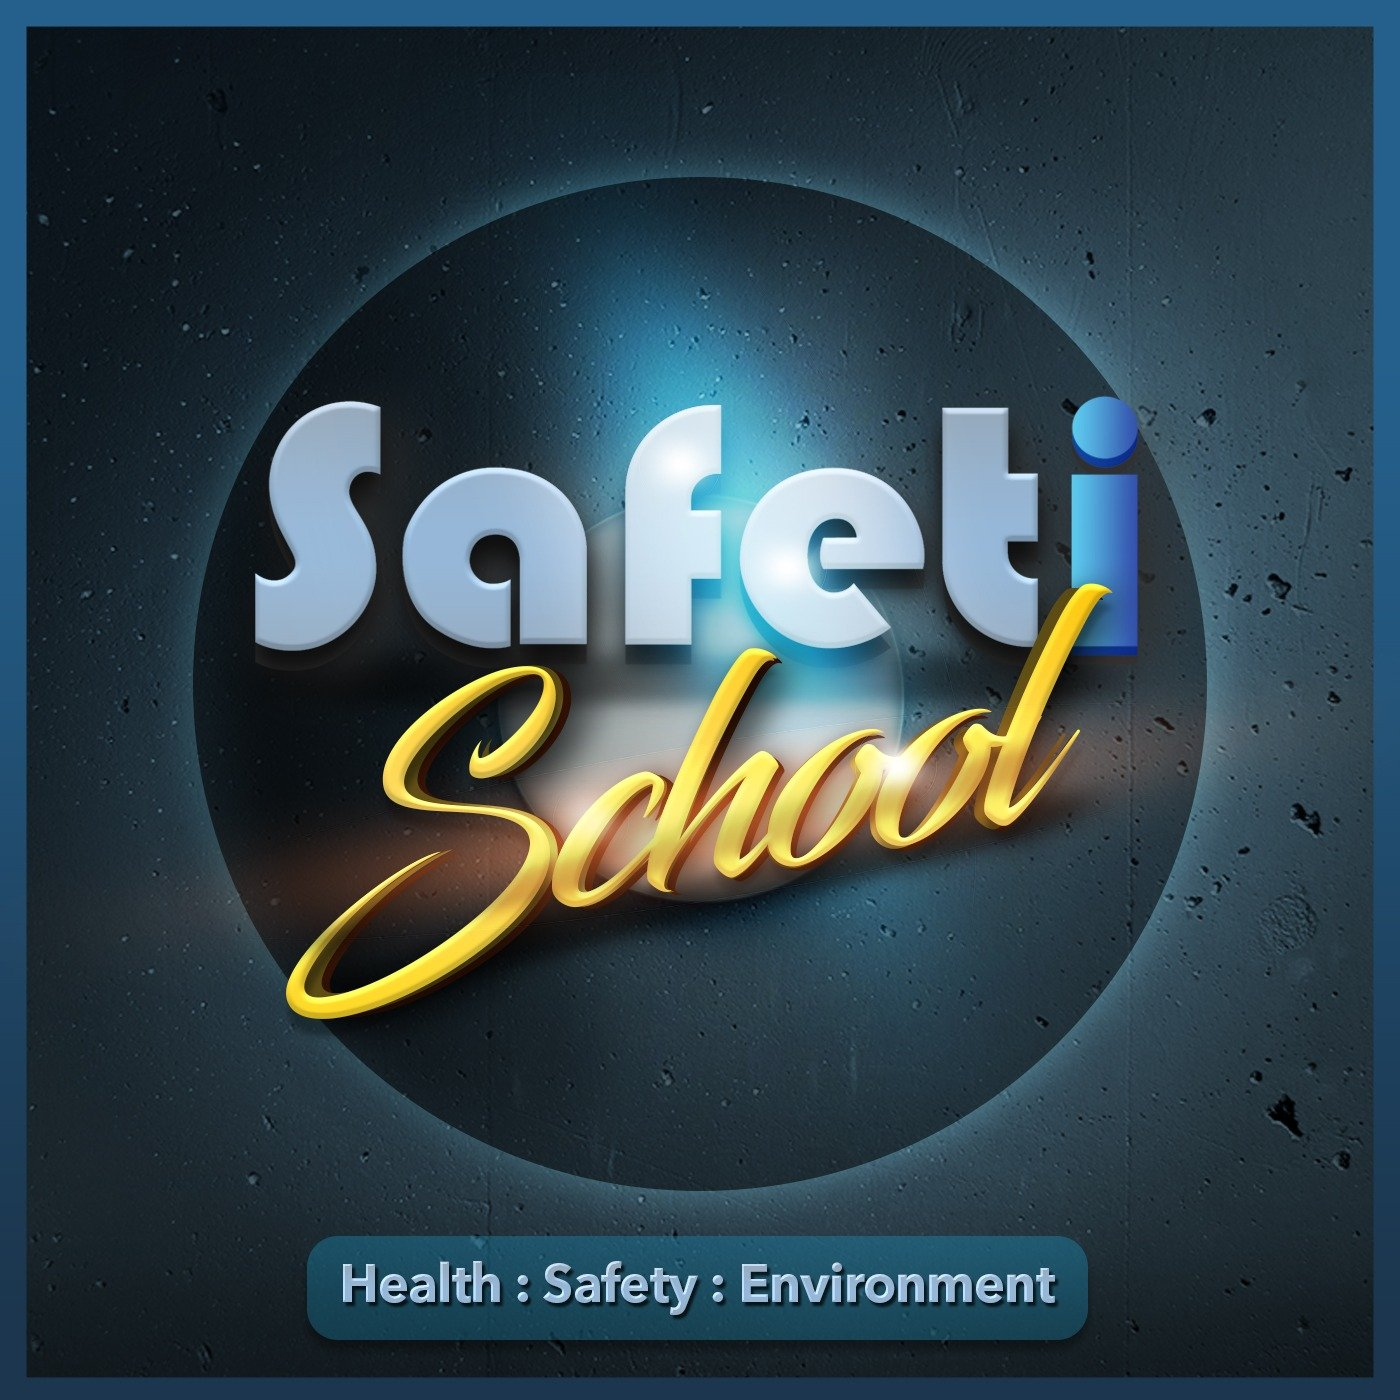 Safeti School Health Safety and Environment